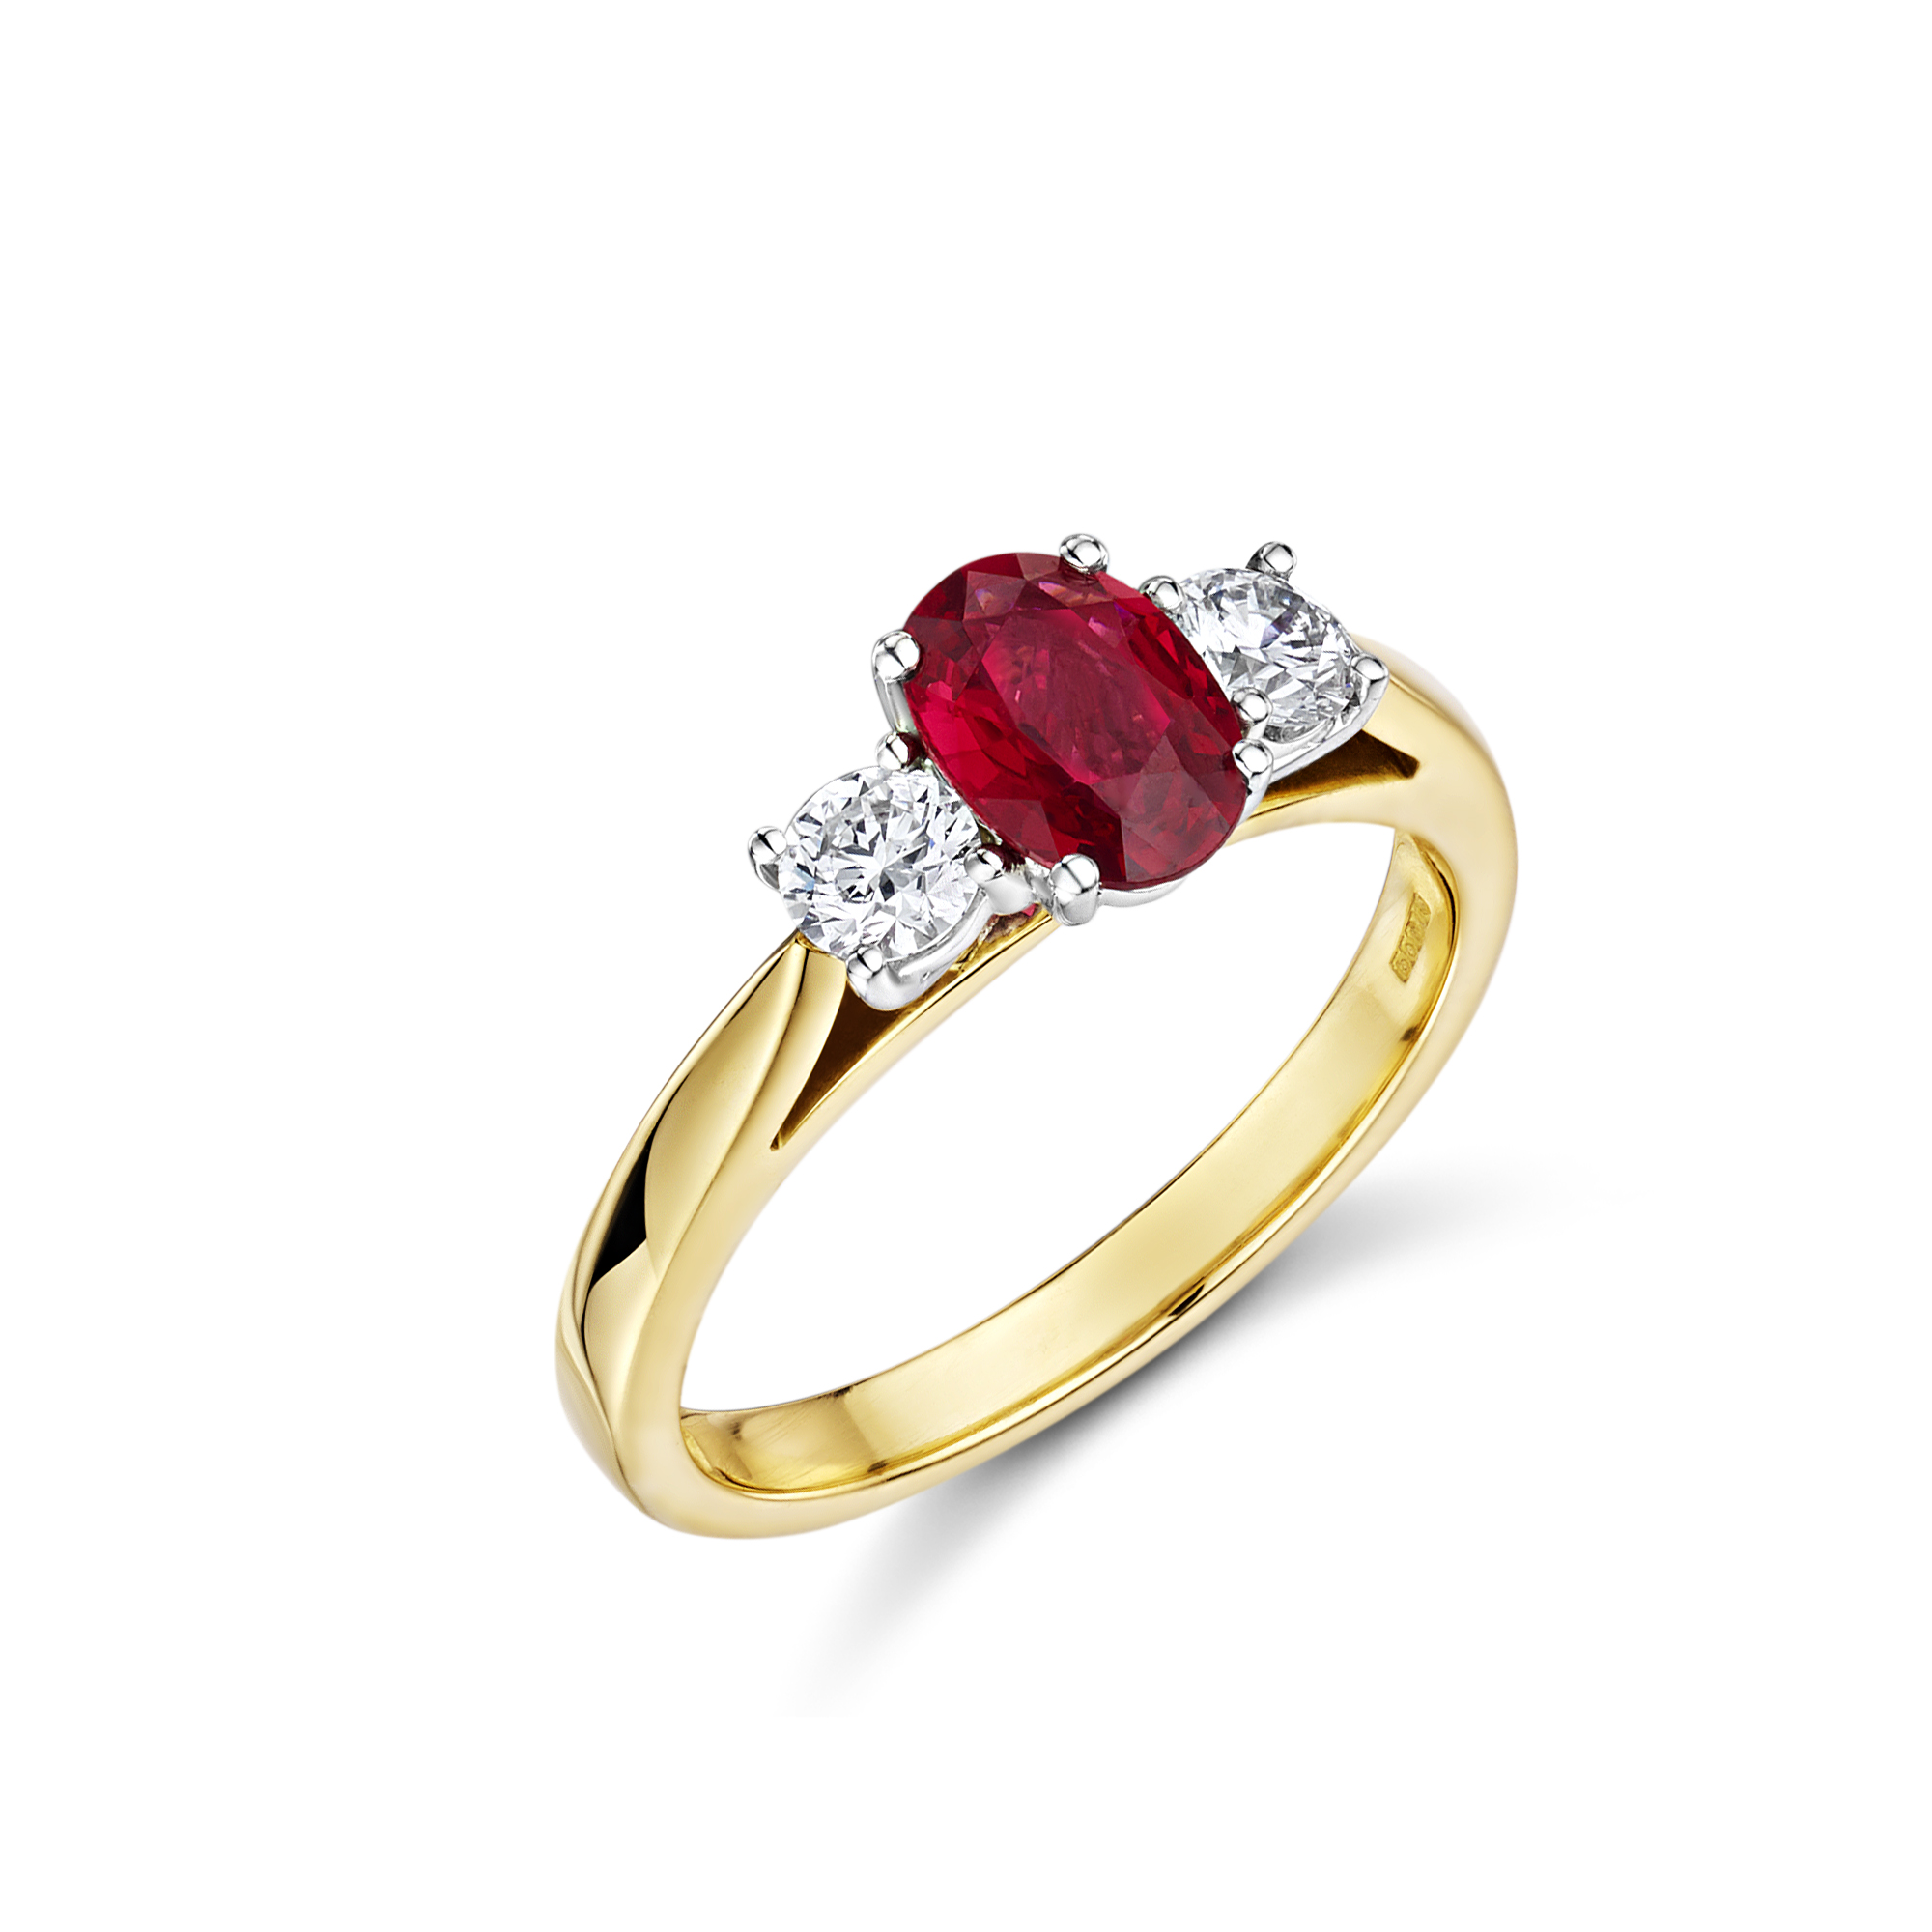 Stunning red Spinel and 2 Diamond ring